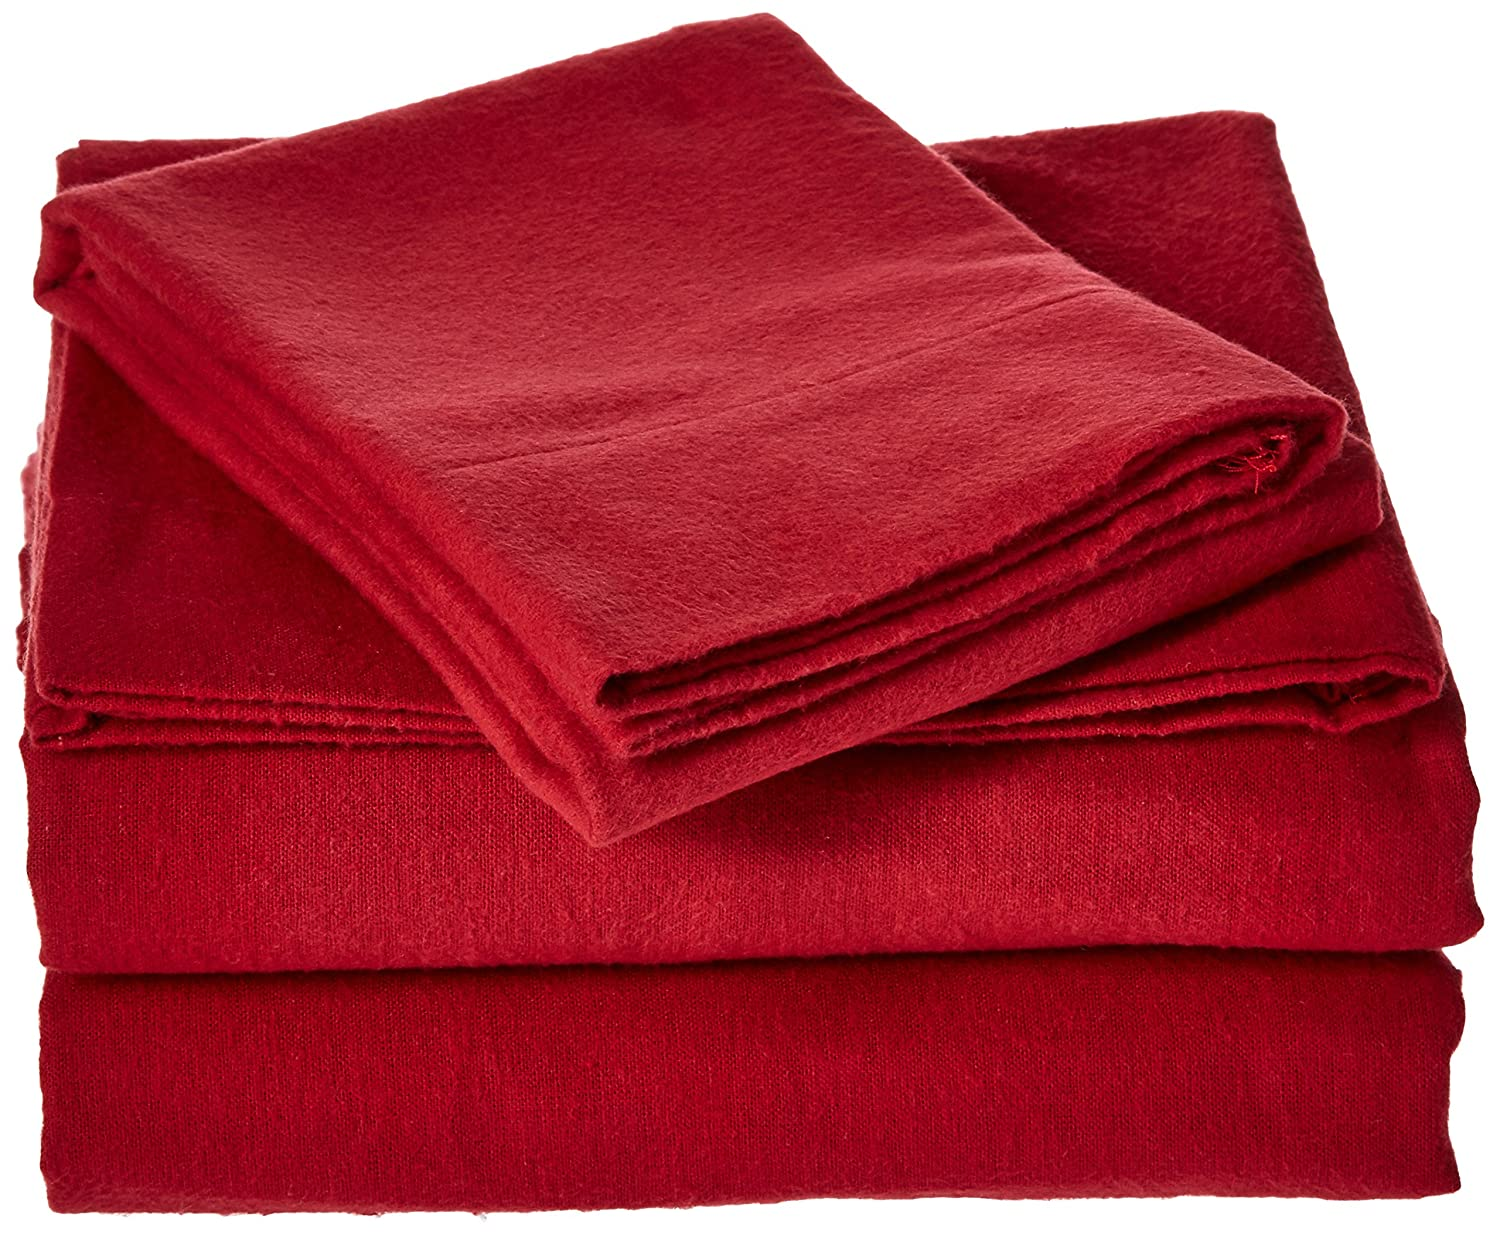 Brielle Cotton Flannel Sheet Set, Queen, Red